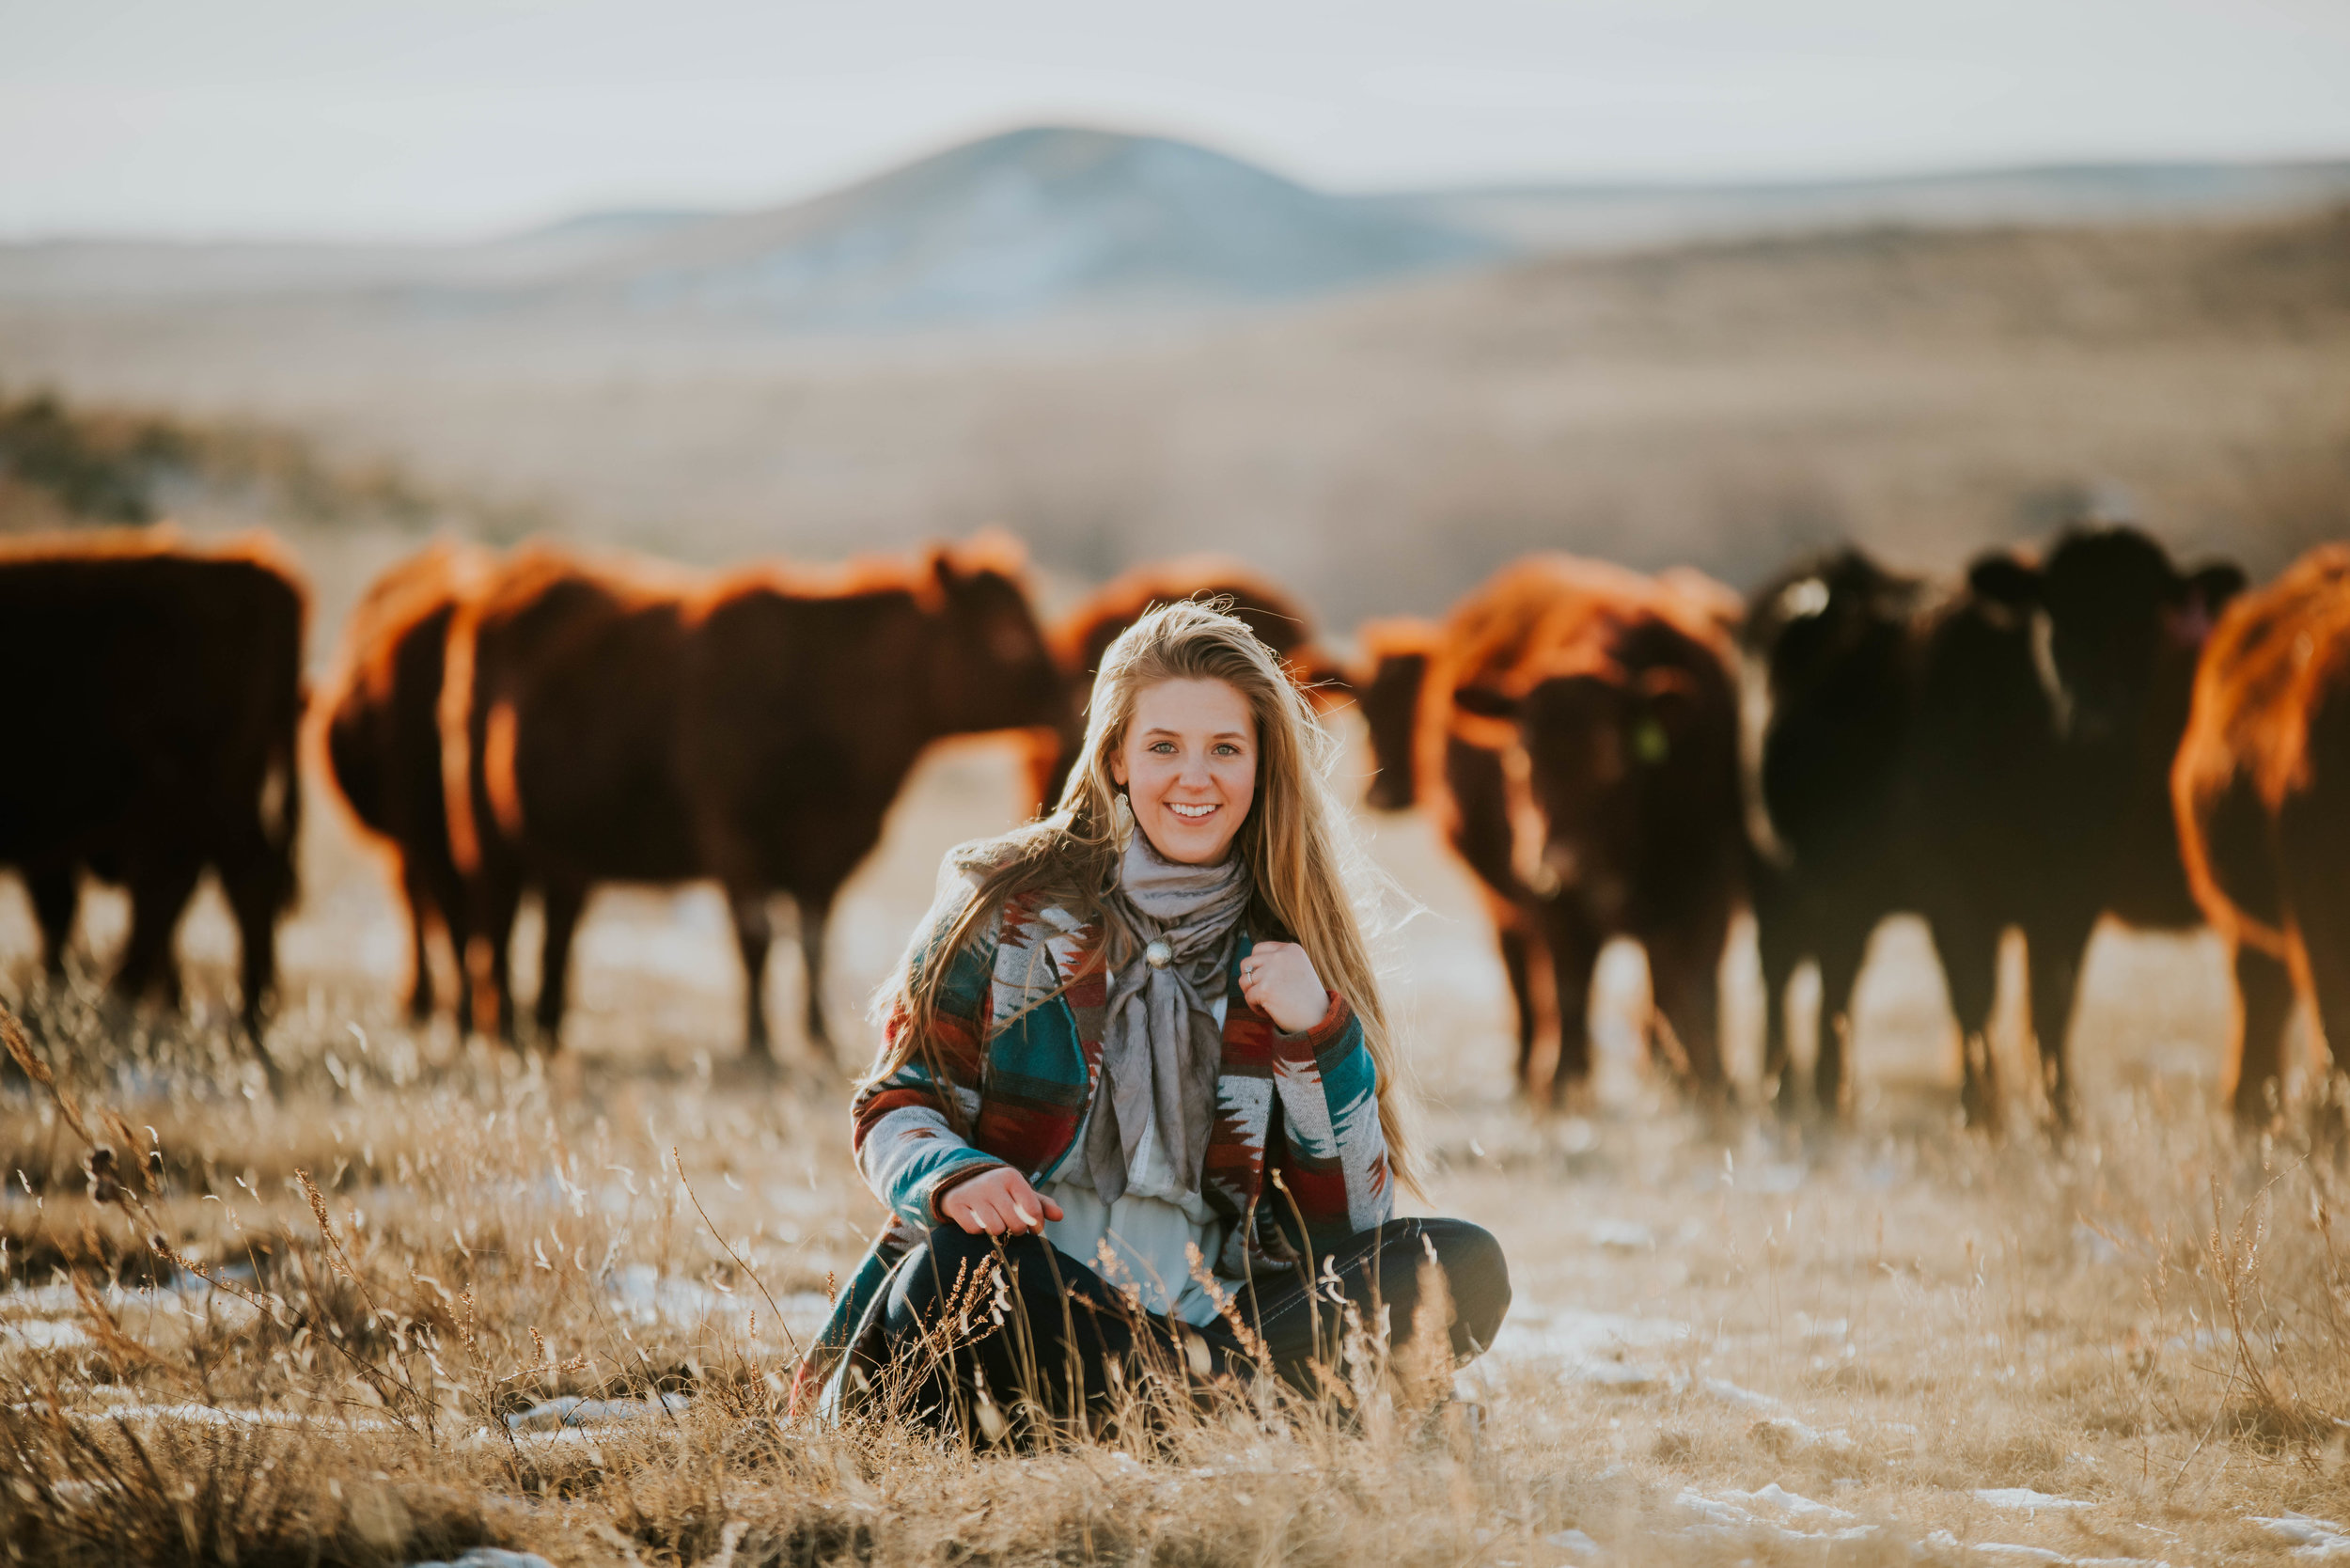 Miss. Miller's Photography | Colorado Western Photographer | Cowgirl Photos | Cattle Ranching